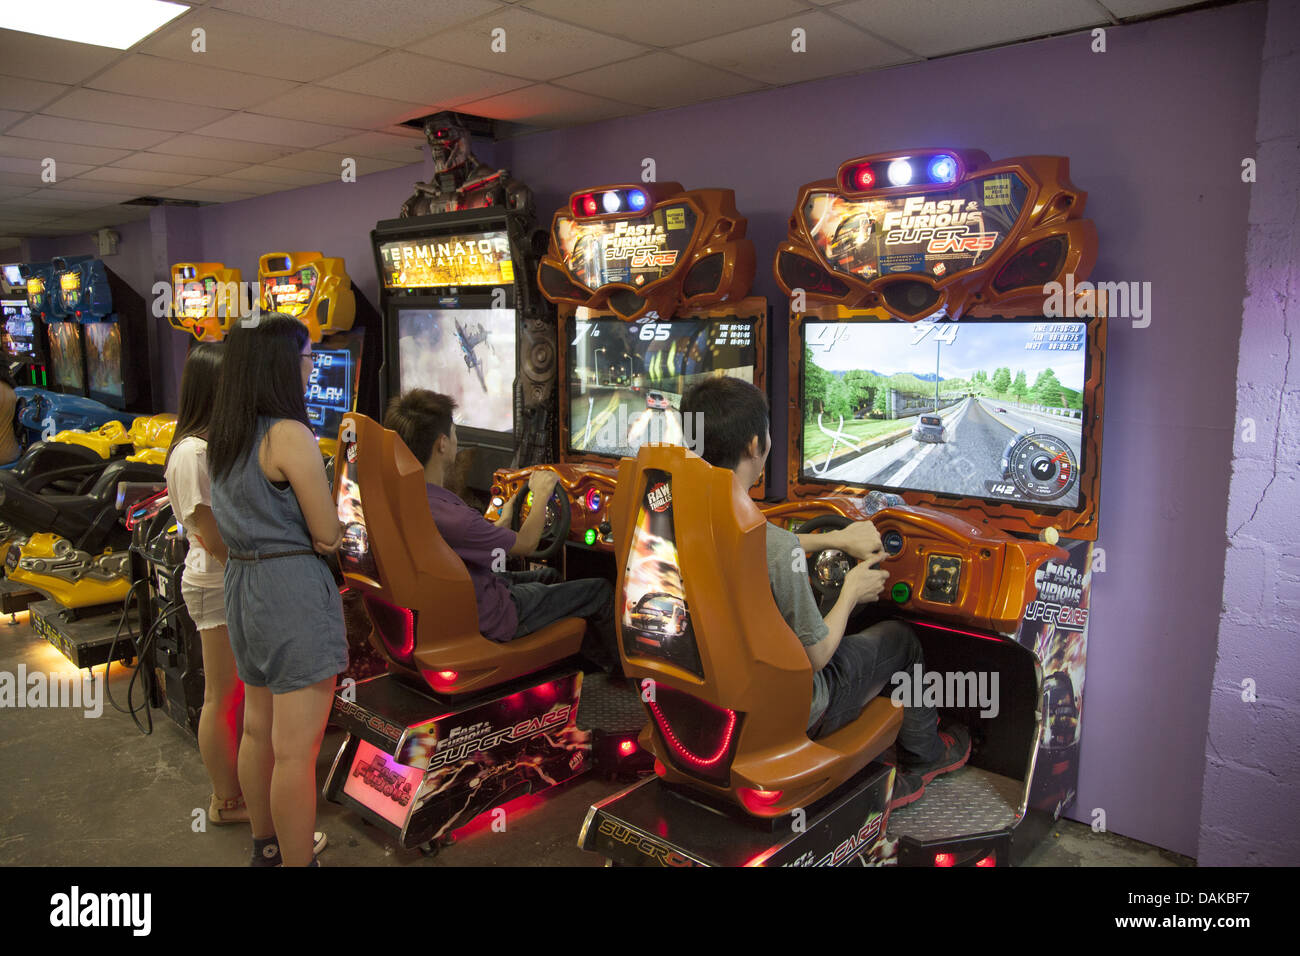 Teens get an adrenaline rush at the video arcade driving race cars at high speeds at Coney Island, - Stock Image